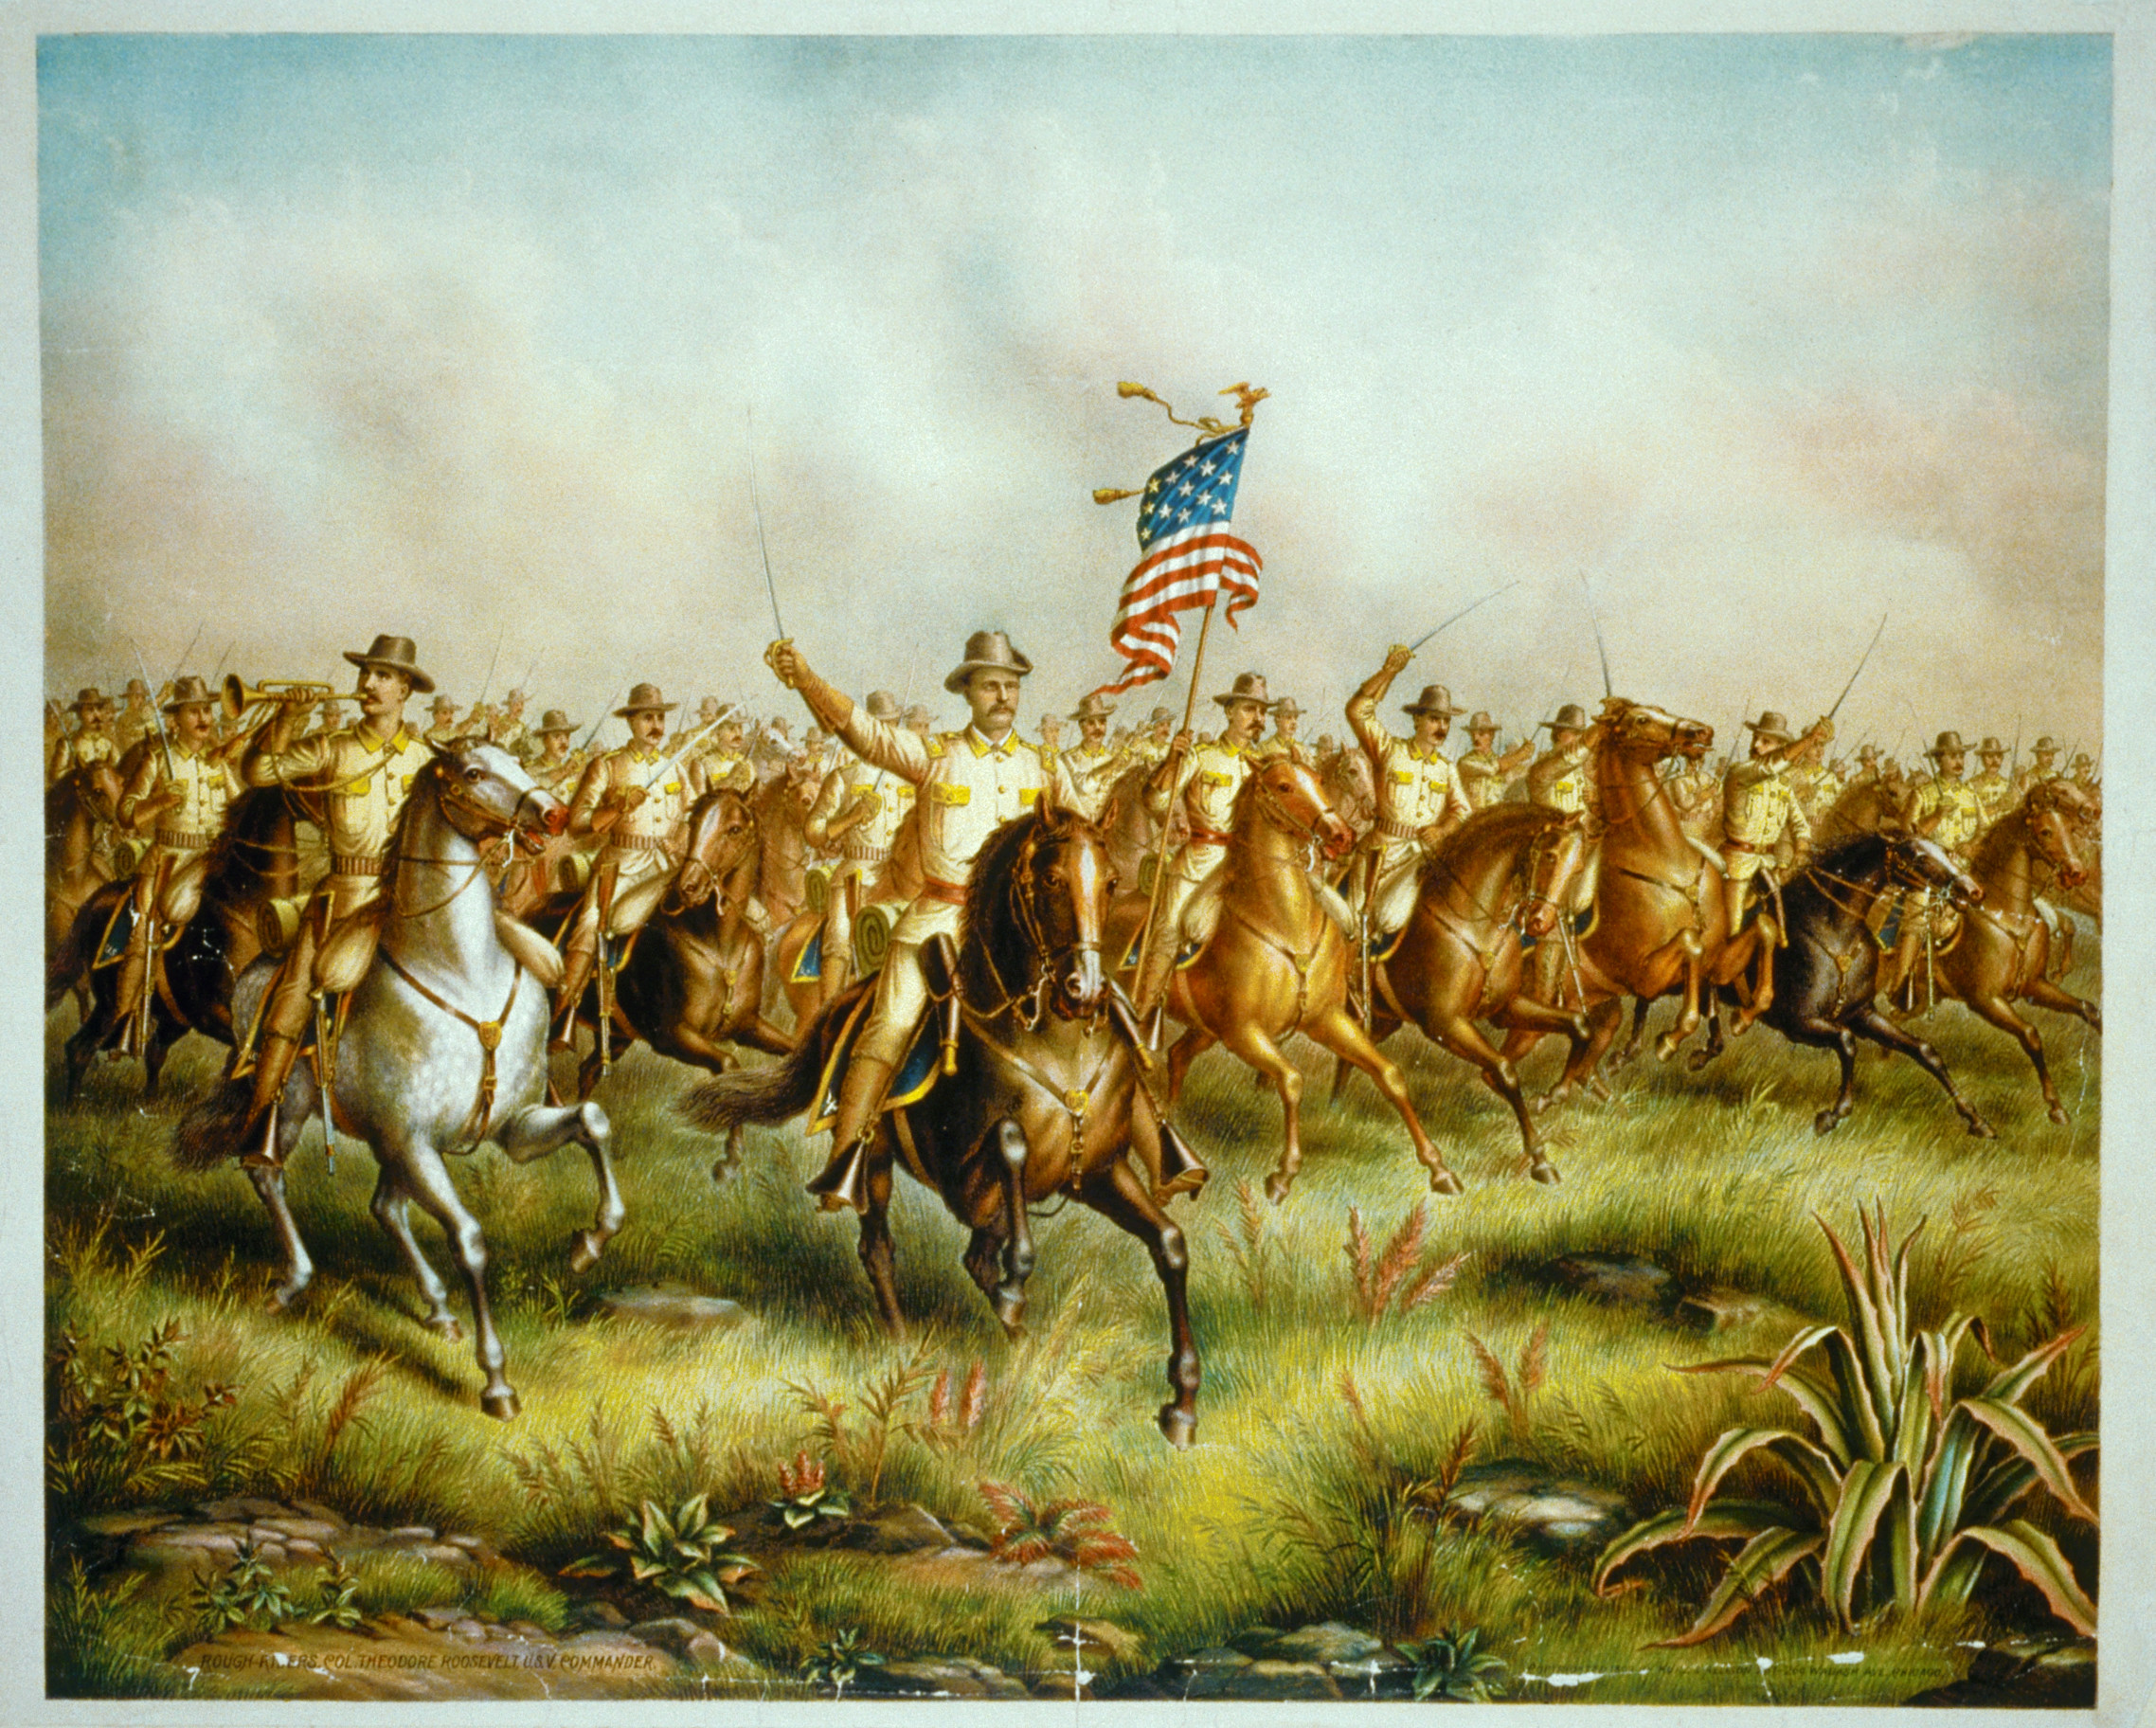 the mission of roosevelts rough riders in cuba Rough riders, popular name for the 1st regiment of us cavalry volunteers, organized largely by theodore roosevelt in the spanish-american war (1898) its members were mostly ranchers and cowboys from the west, with a sprinkling of adventurous blue bloods from the eastern universities.